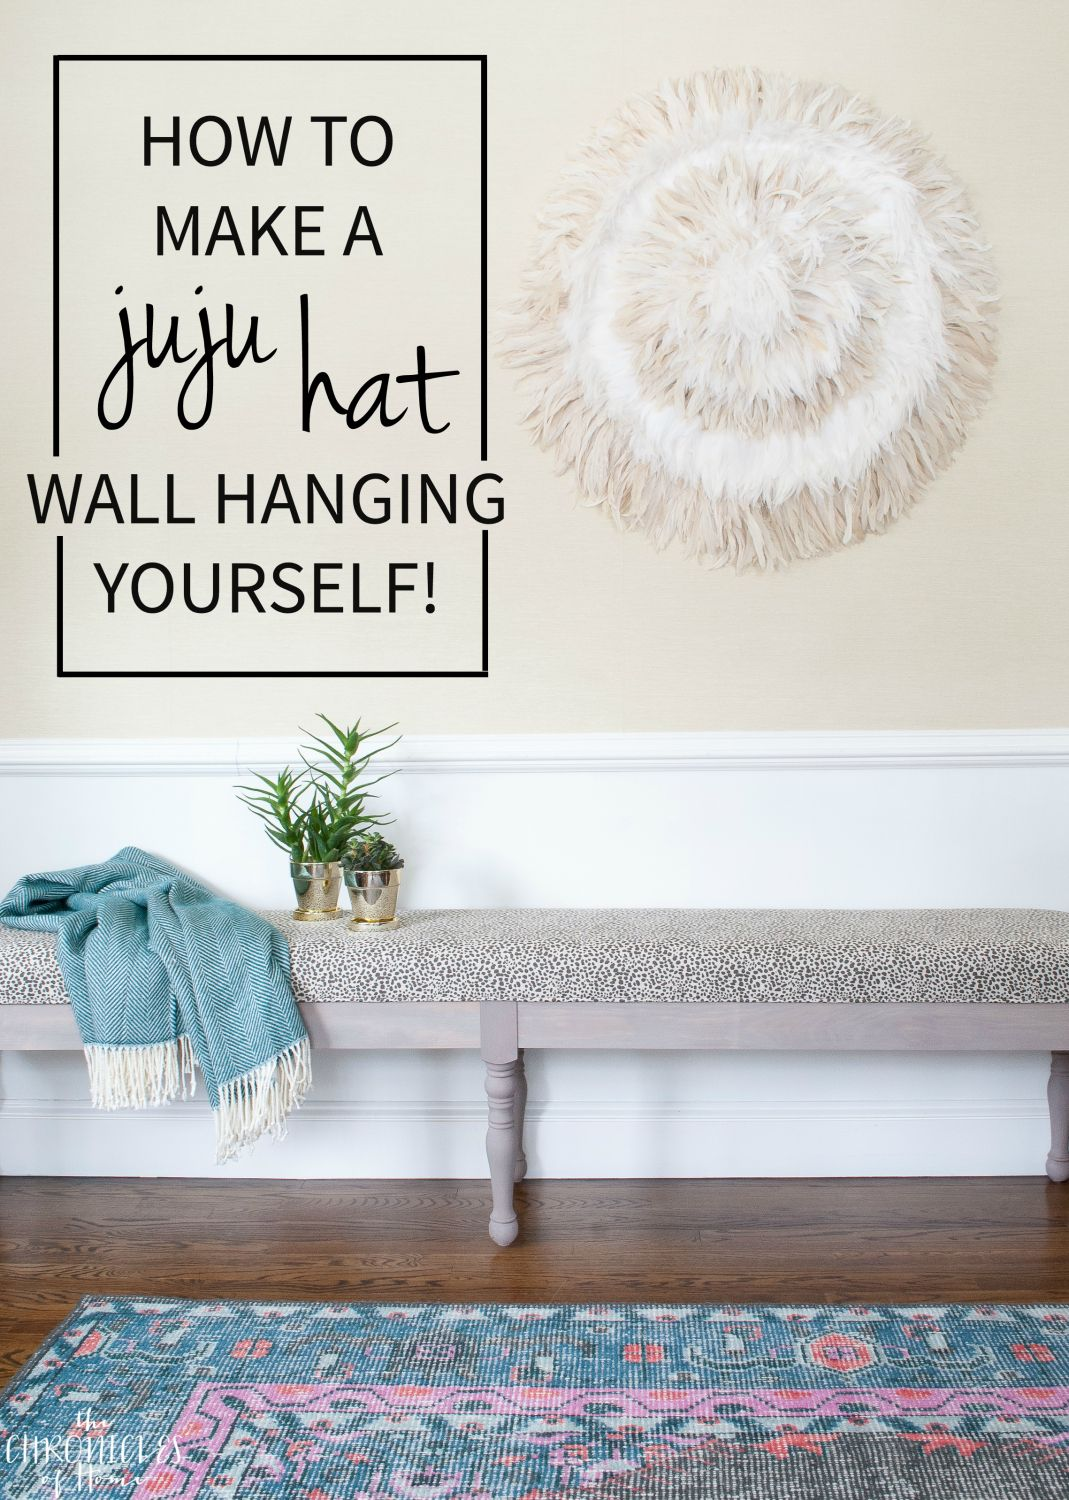 Diy Juju Hat Feather Wall Hanging Cuckoo 4 Diy Diy